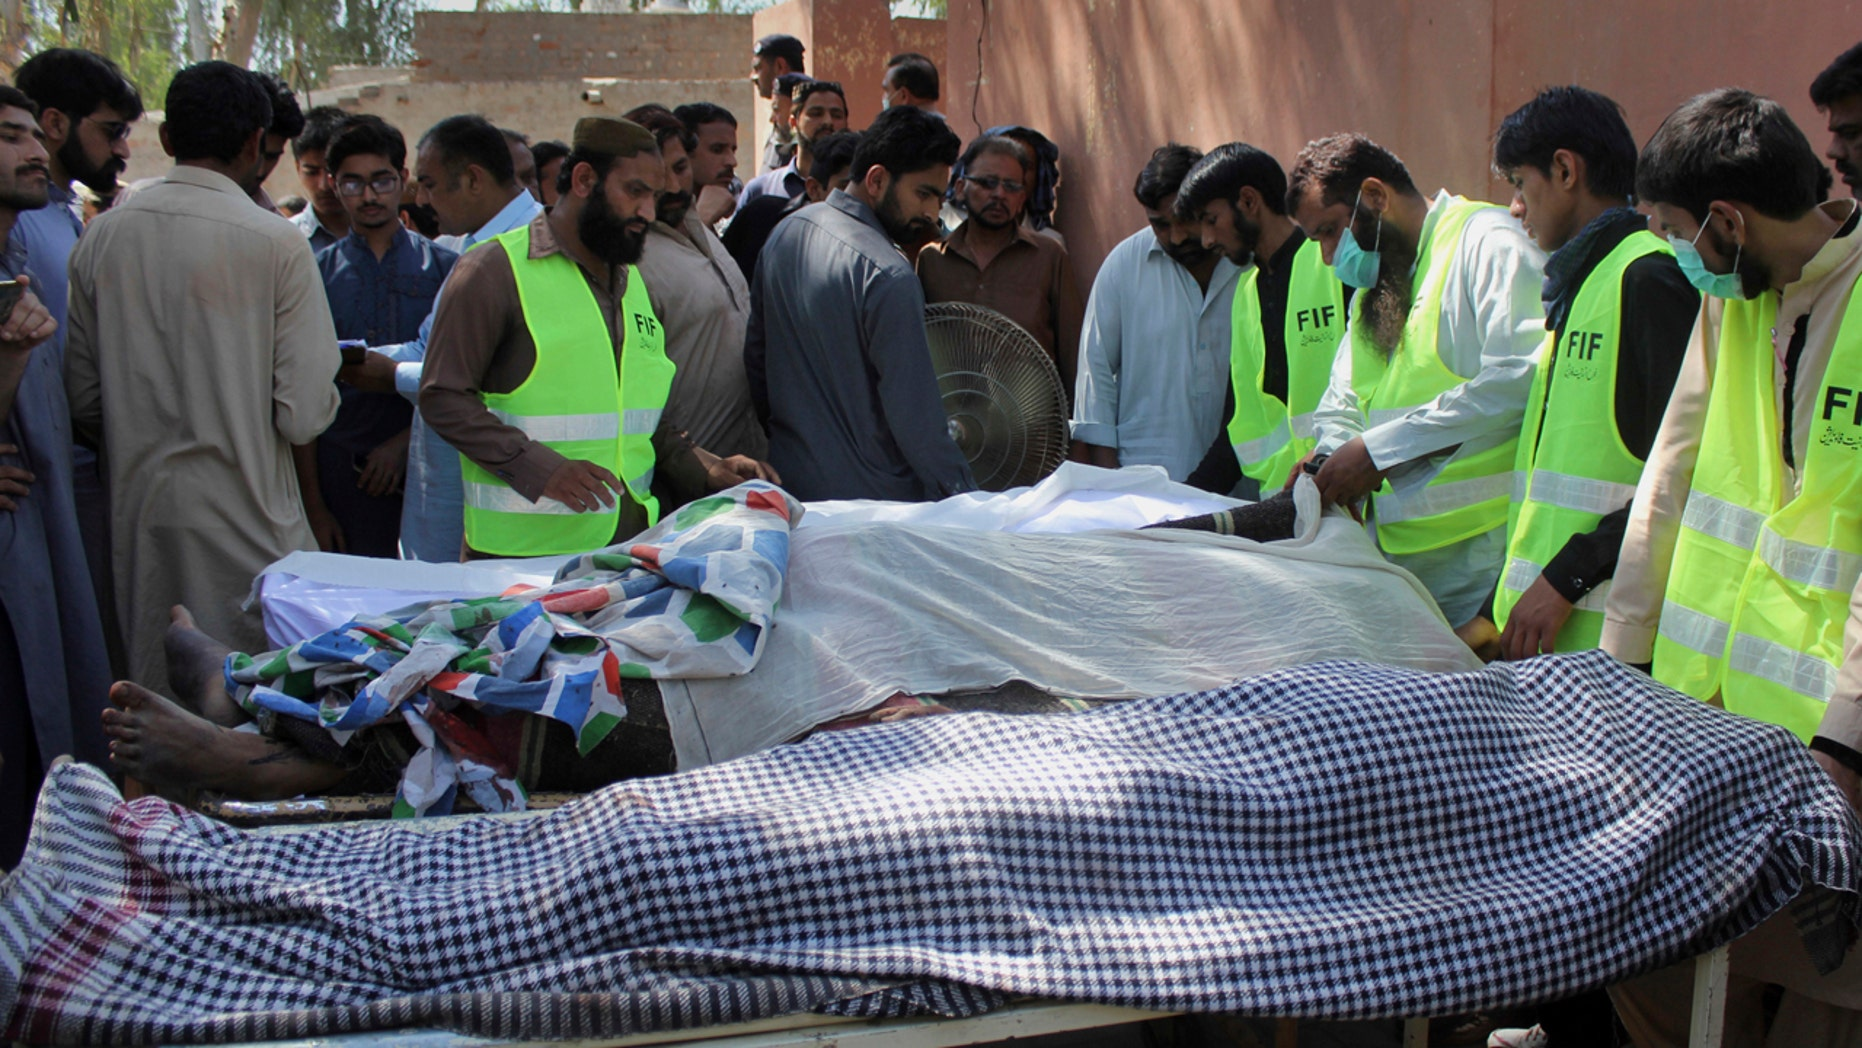 Pakistani volunteers and local residents gather around the bodies of people who were killed in a local shrine, outside the morgue of a hospital in Sarghodha, Pakistan, Sunday, April 2, 2017.